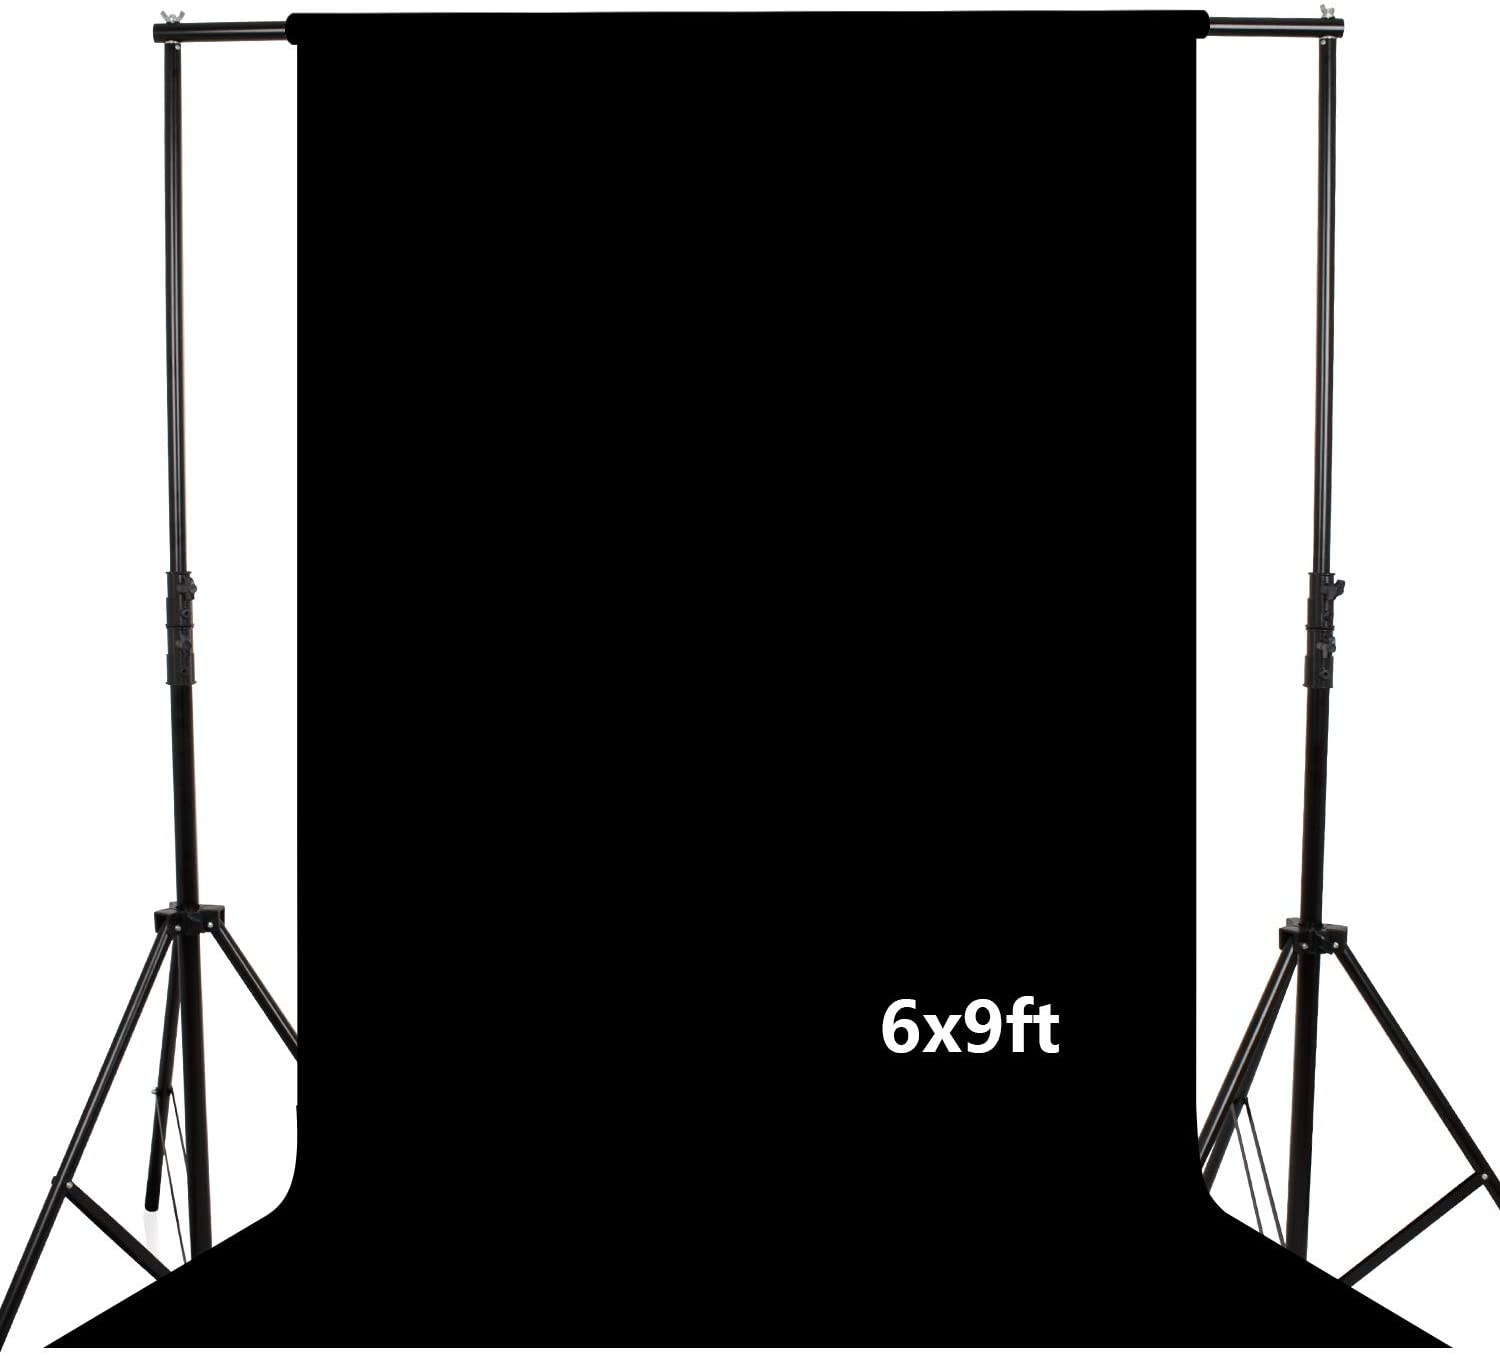 LDGHO Black 6x9 feet/1.8x2.8 Meters Photo Studio Collapsible Backdrop Background for Photography, Video and Television (Background Only)